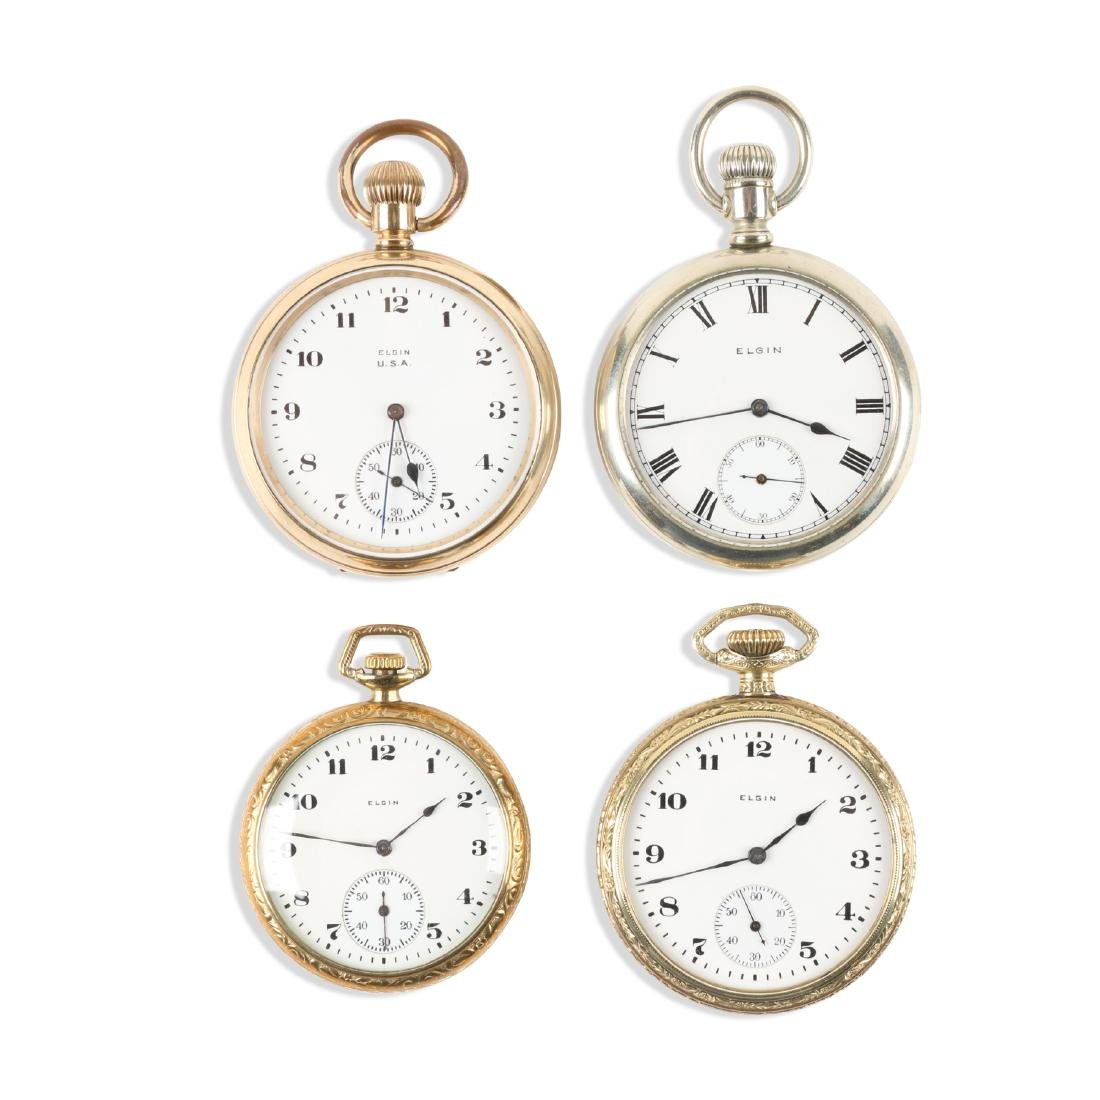 Elgin, Open Face Pocket Watches